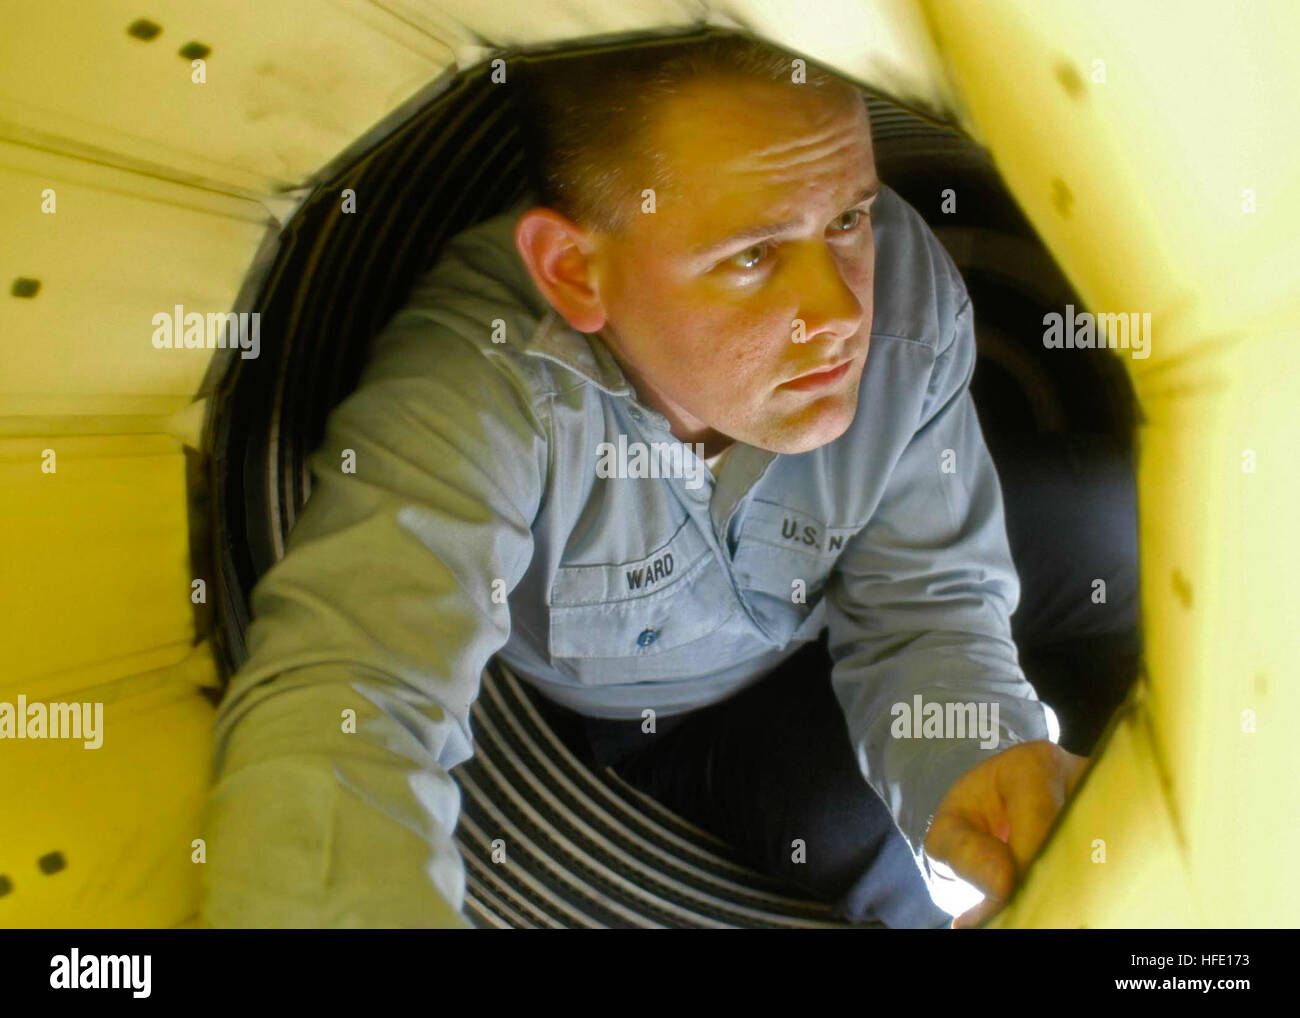 040623-N-4166B-001 de l'océan Pacifique (23 juin 2004) - Aviation Machiniste Mate Airman Paul Ward, de Photo Stock